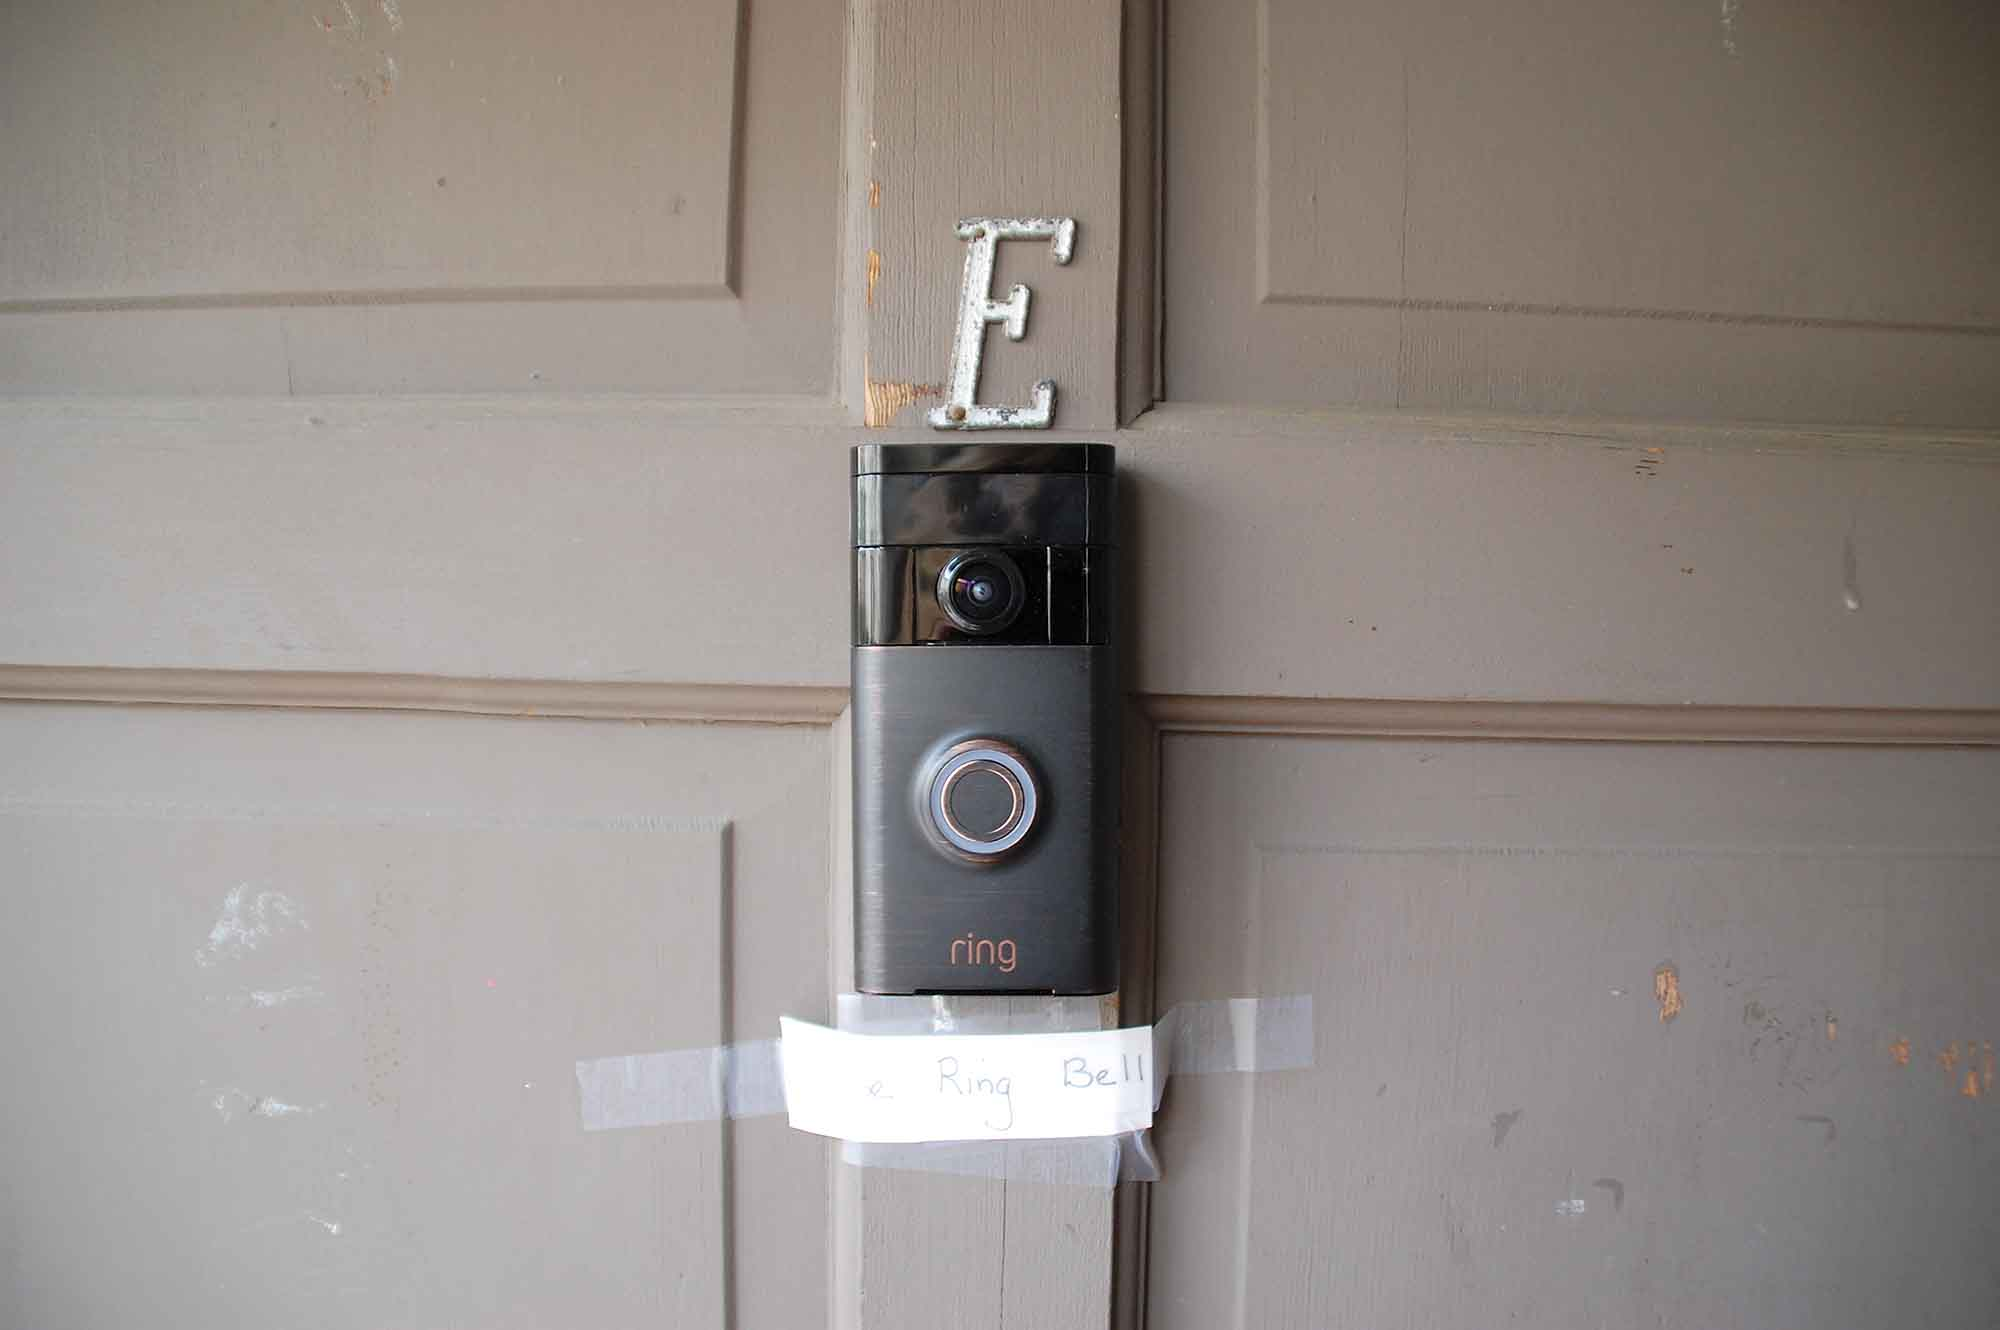 Rent Control Tenant Faces Eviction Threat Over Ring Doorbell Santa